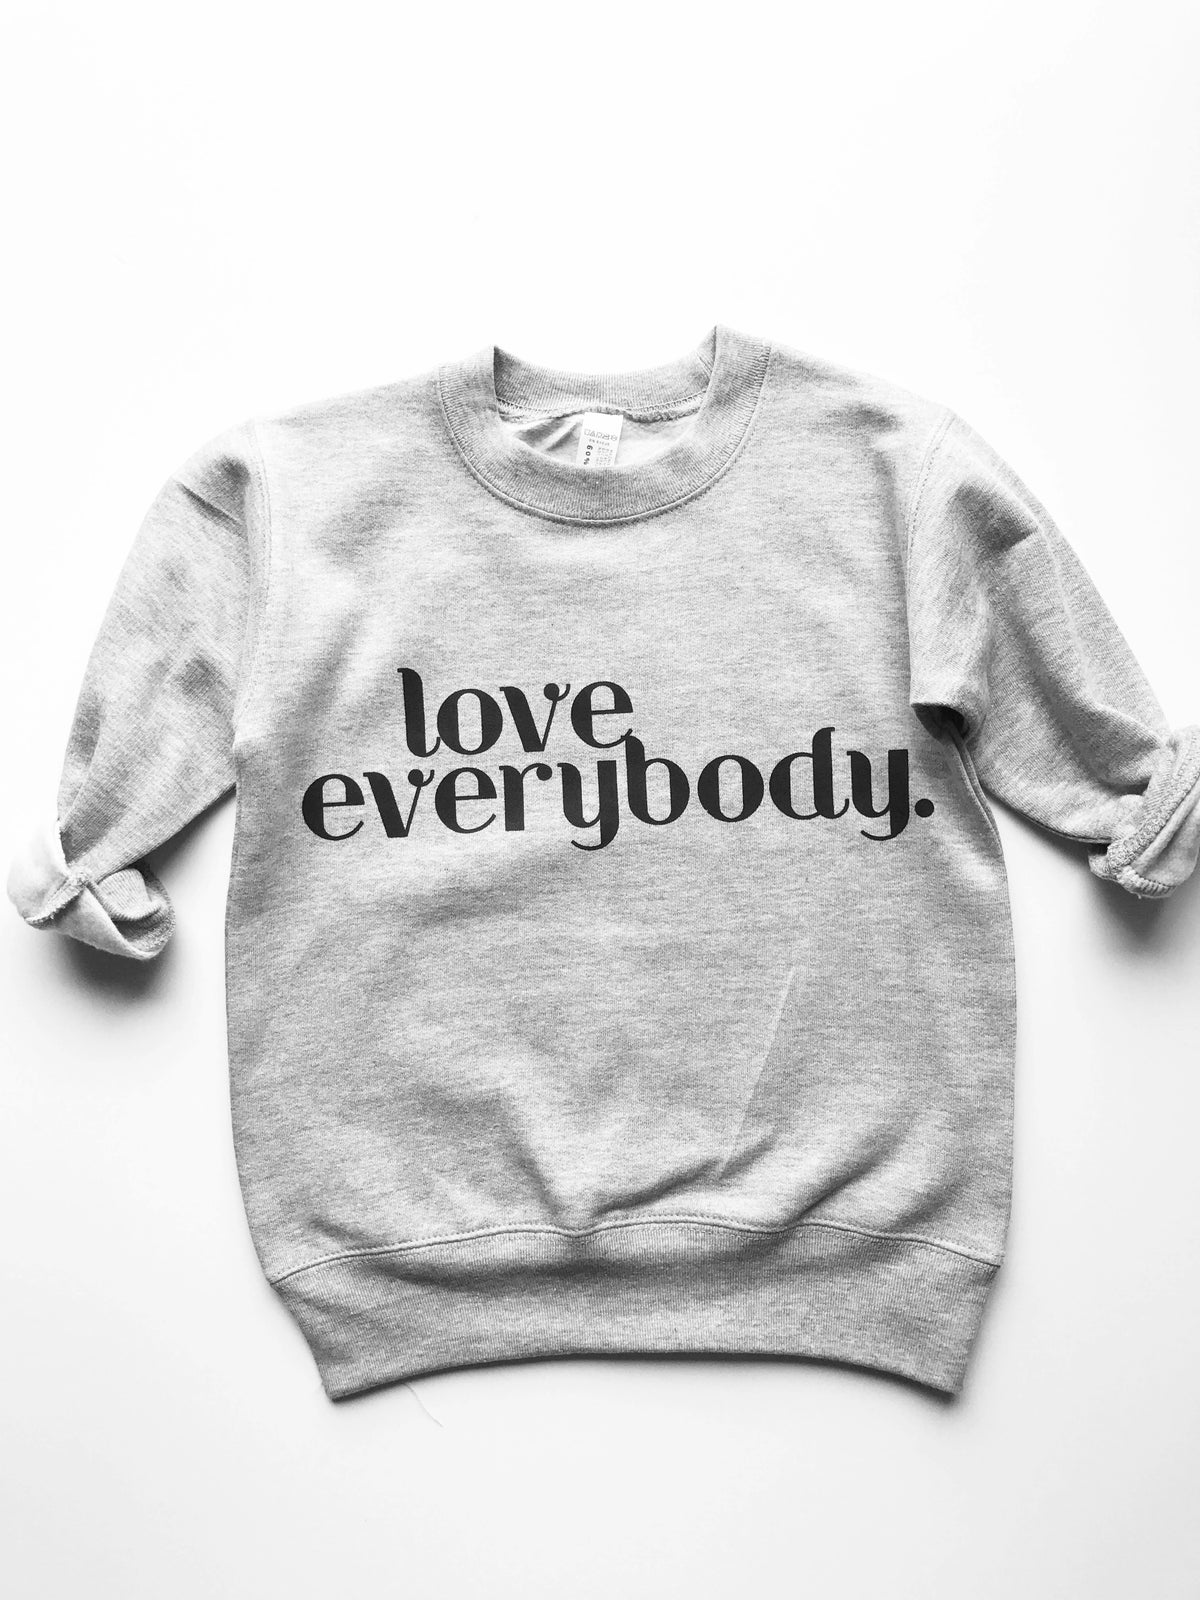 Love Everybody Kiddo Sweatshirt